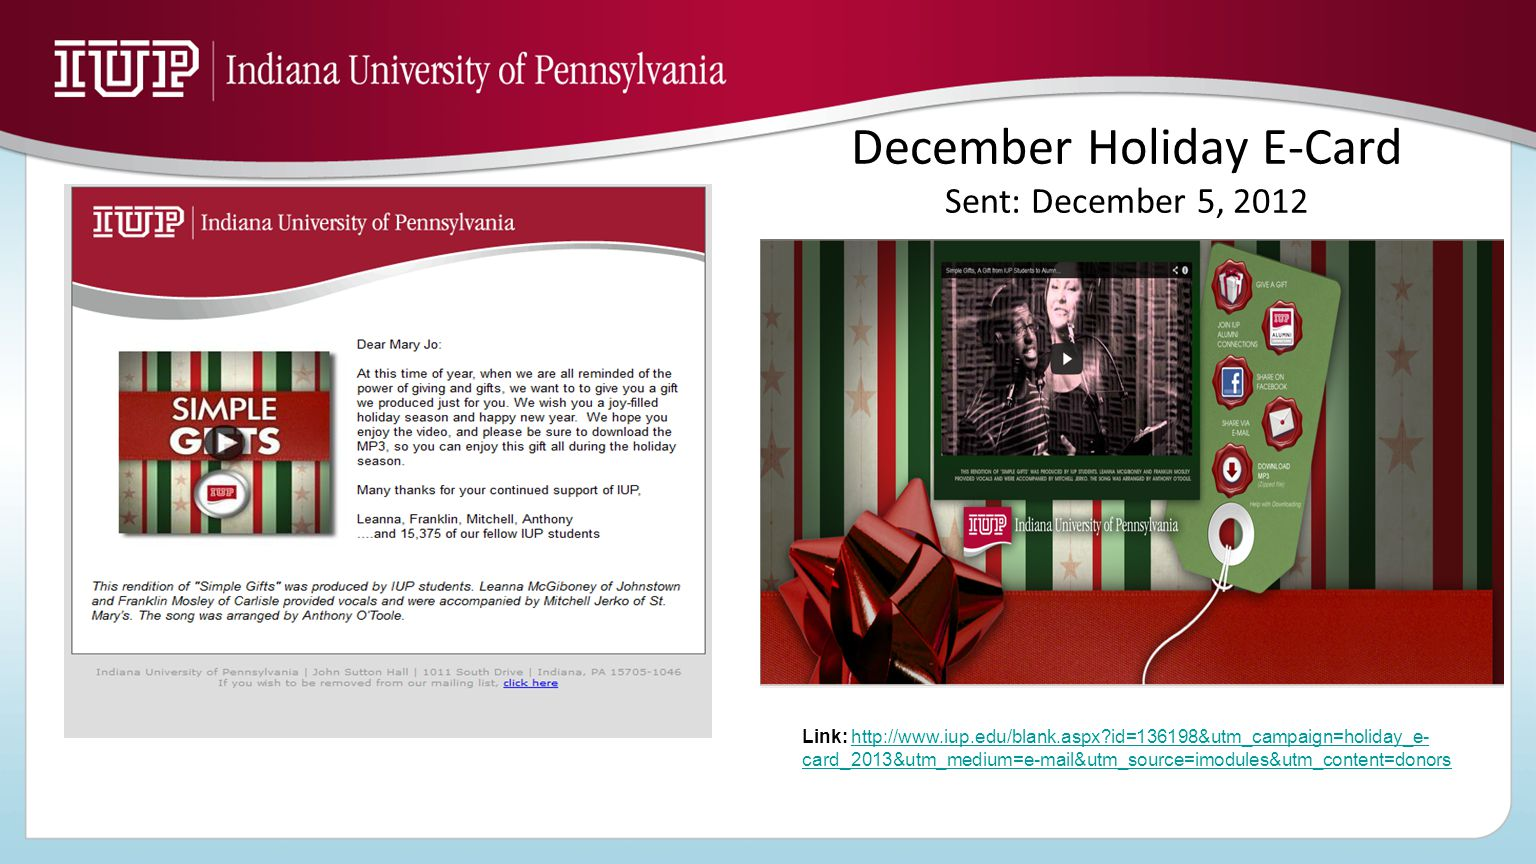 December Holiday E-Card Sent: December 5, 2012 Link: http://www.iup.edu/blank.aspx?id=136198&utm_campaign=holiday_e- card_2013&utm_medium=e-mail&utm_source=imodules&utm_content=donorshttp://www.iup.edu/blank.aspx?id=136198&utm_campaign=holiday_e- card_2013&utm_medium=e-mail&utm_source=imodules&utm_content=donors